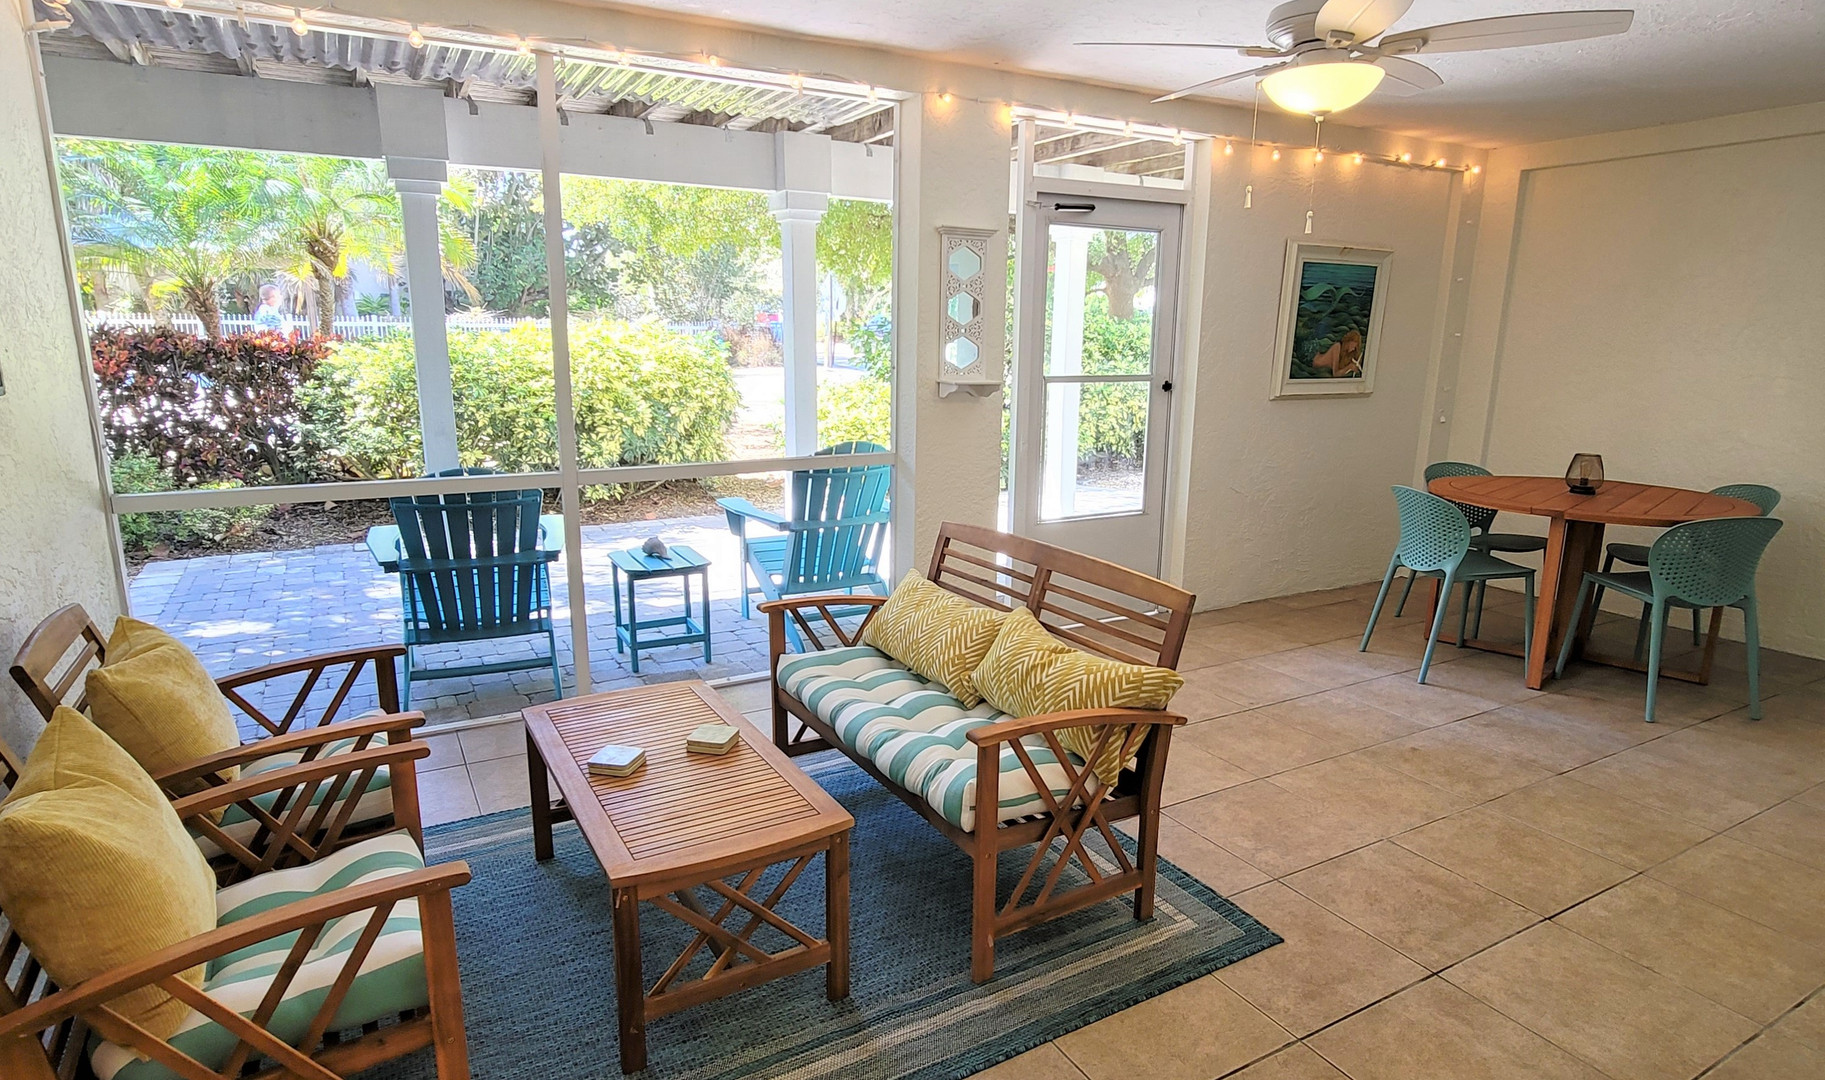 Plenty of seating in the lanai